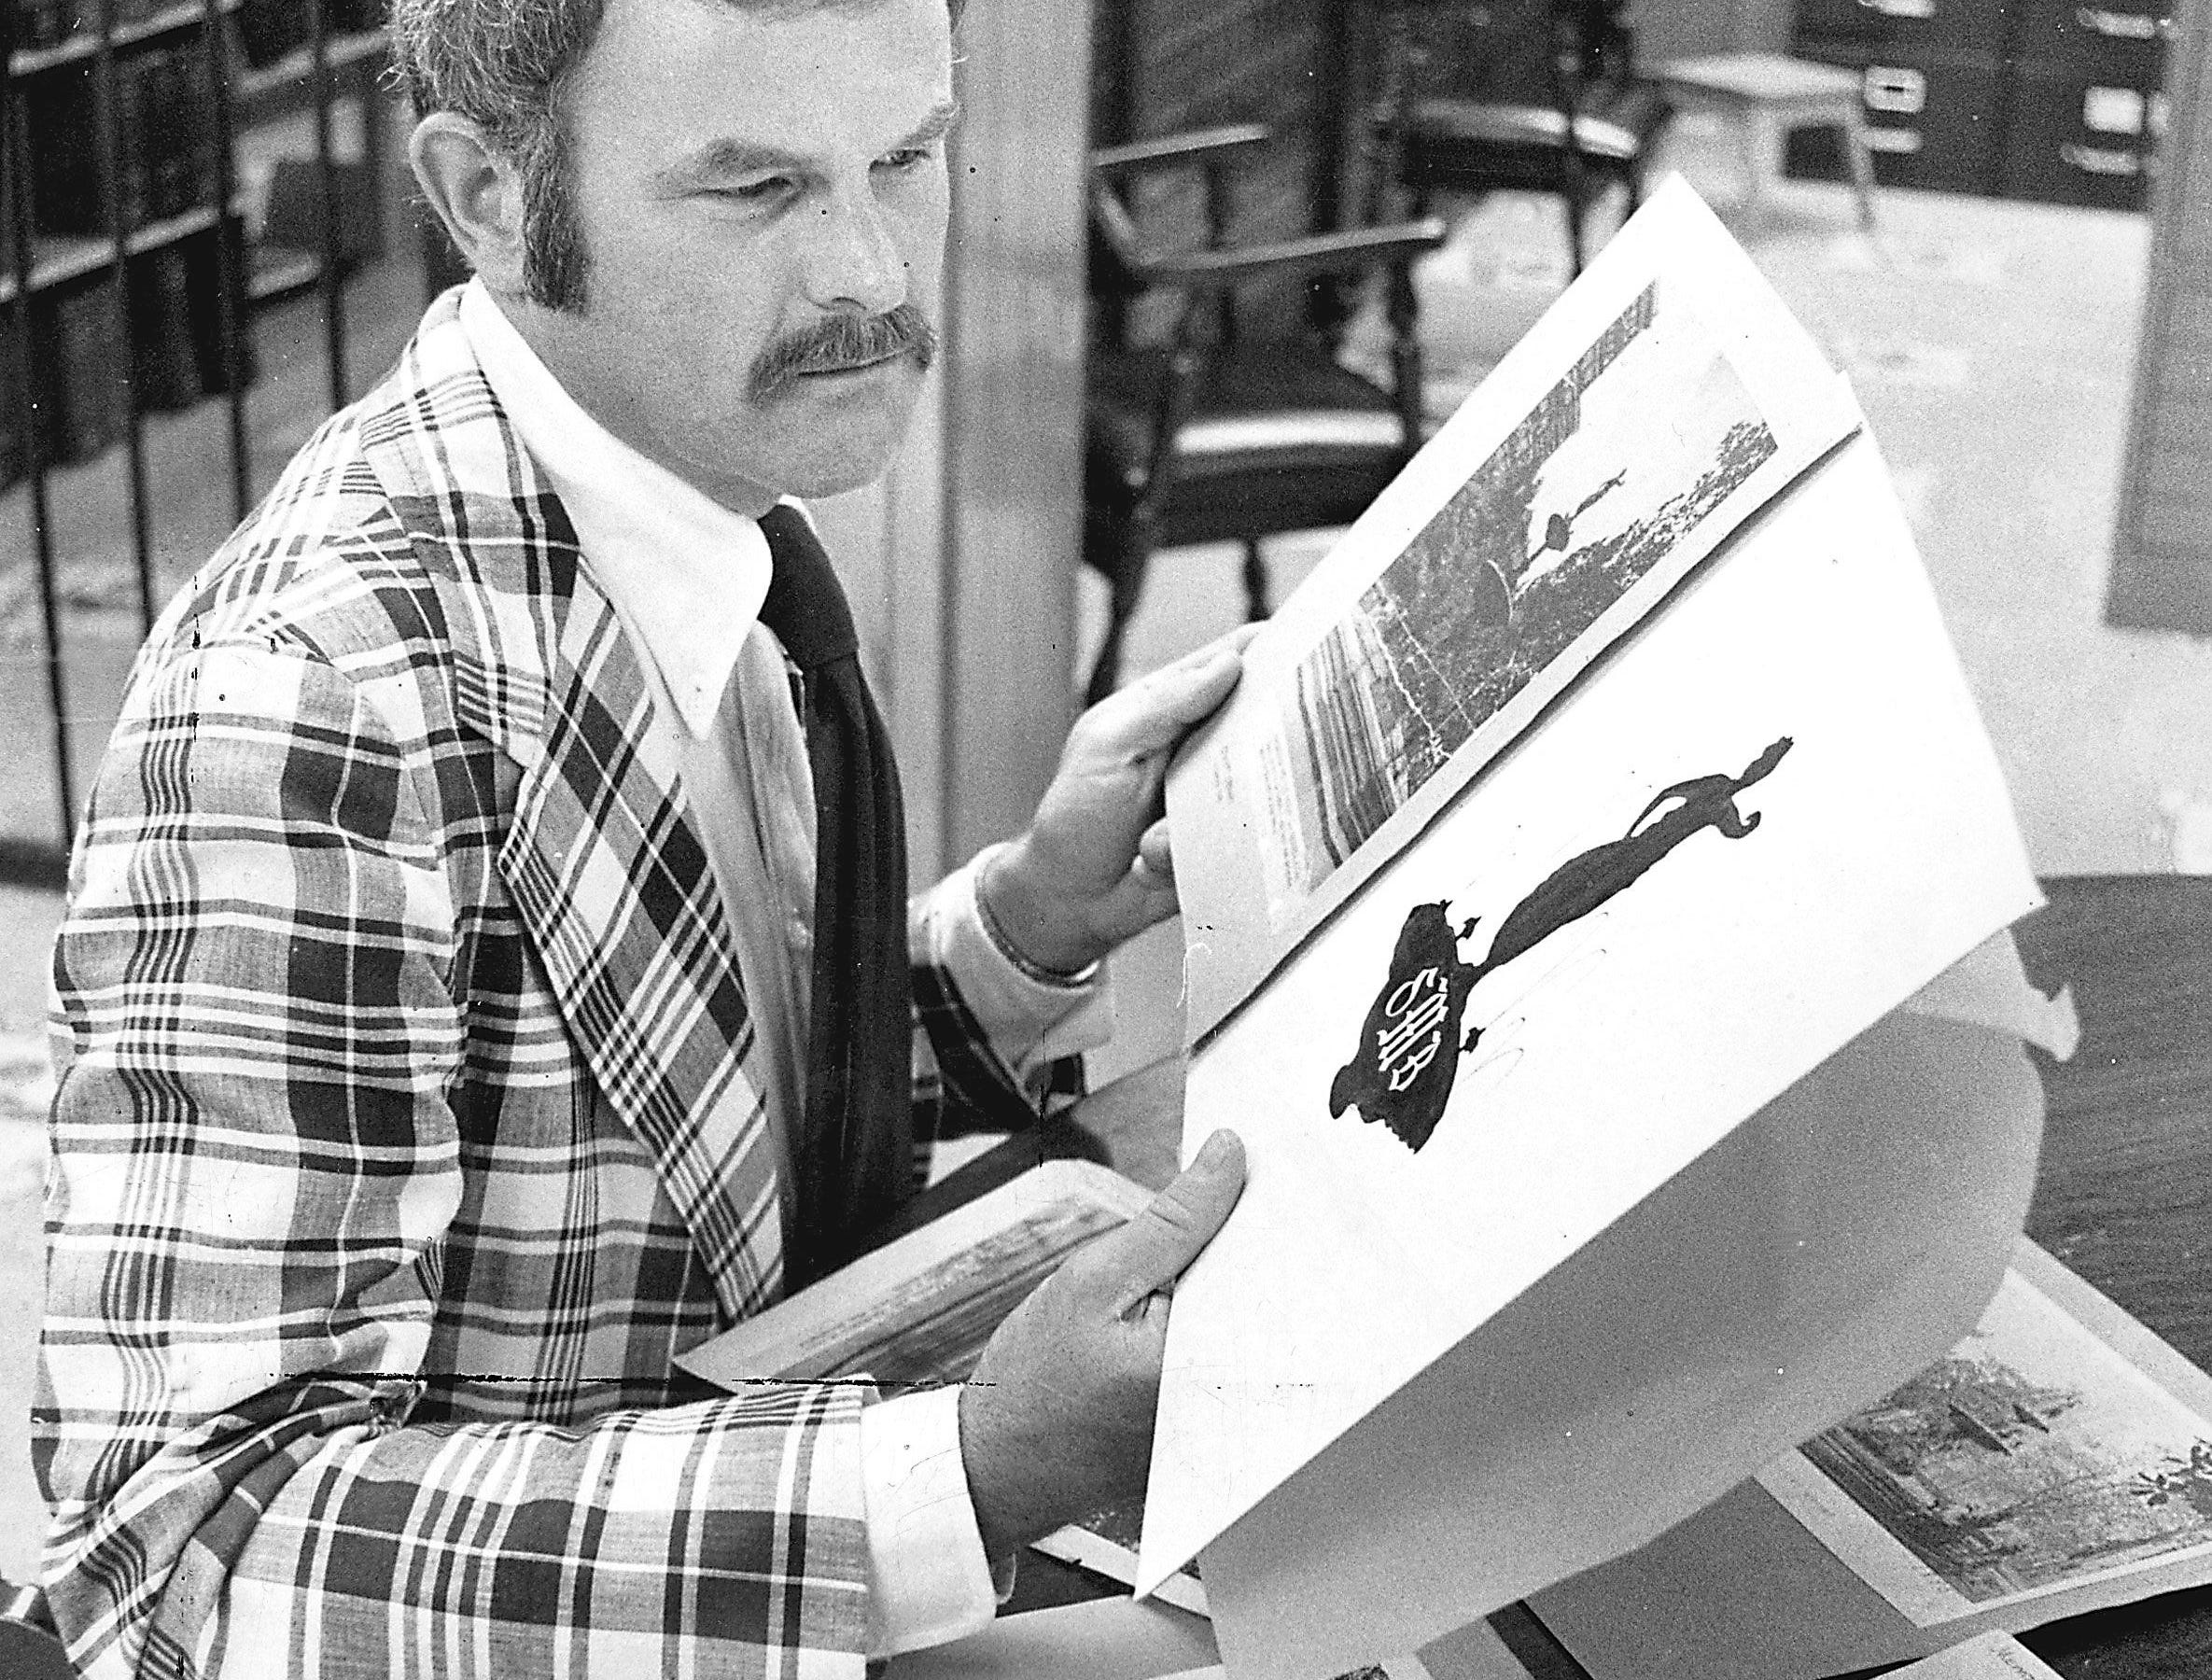 Robert Ruffin III looks over photographs of Hebe, the star adornment of the Court Square fountain, in August 1974. From the photographs, he was able to design the logo which will appear on the stationery, invitations and program for the Symphony Ball, one of Memphis? most illustrious annual benefit events. The ball is scheduled for Oct. 5 at the Germantown home of J. Everett Norfleet.